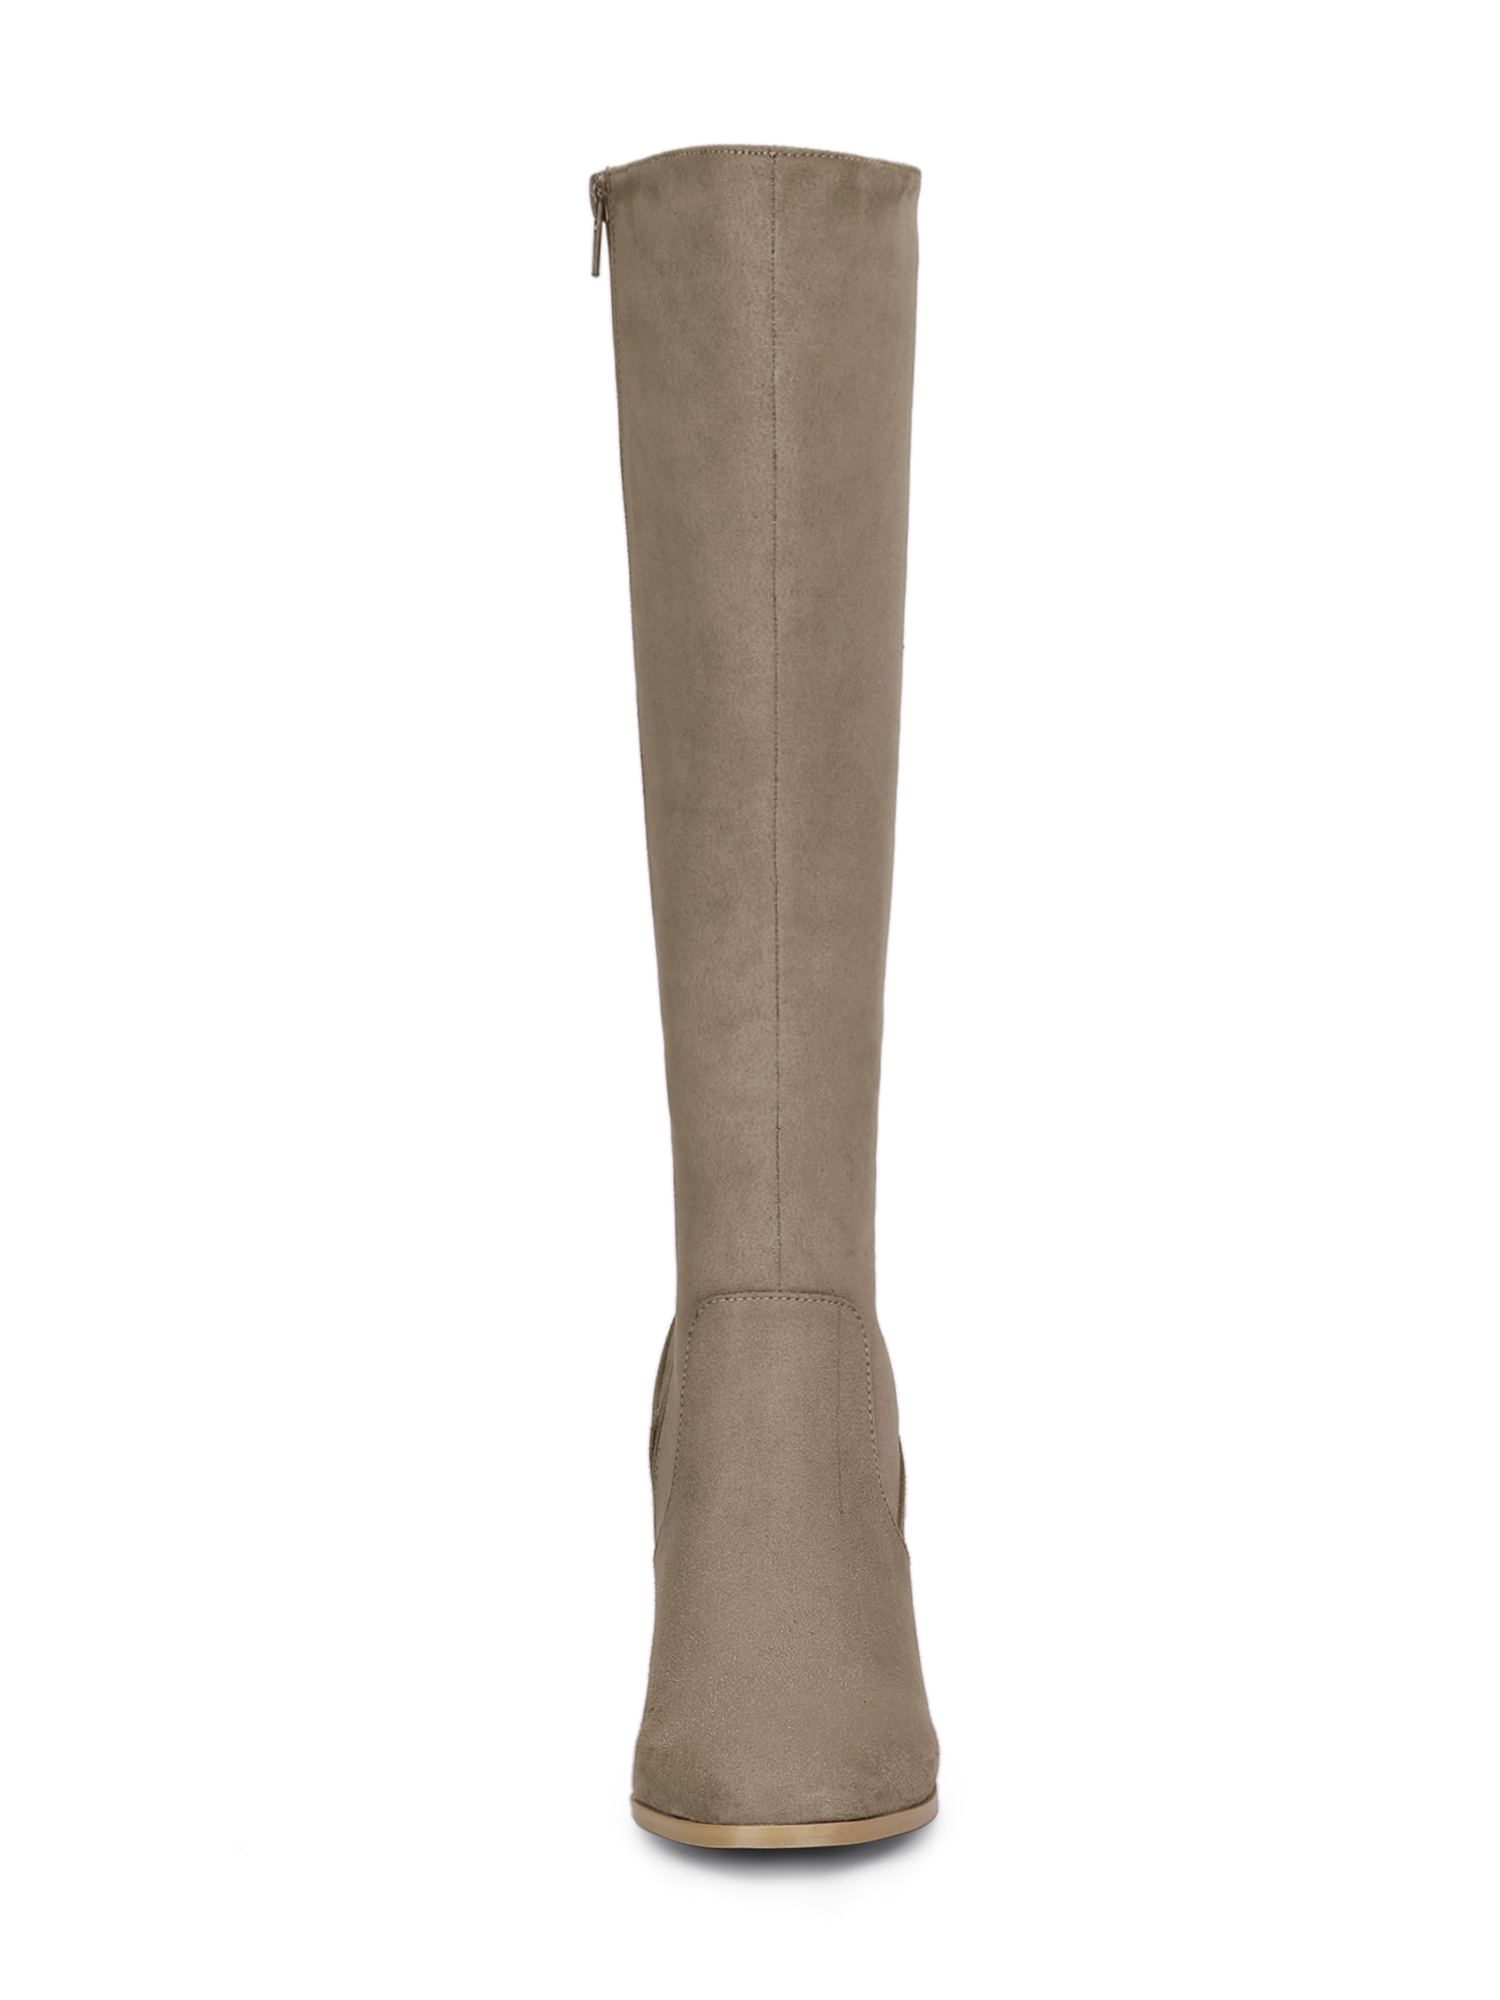 Women's Round Toe Block Heel Knee High Boots Taupe (Size 7)